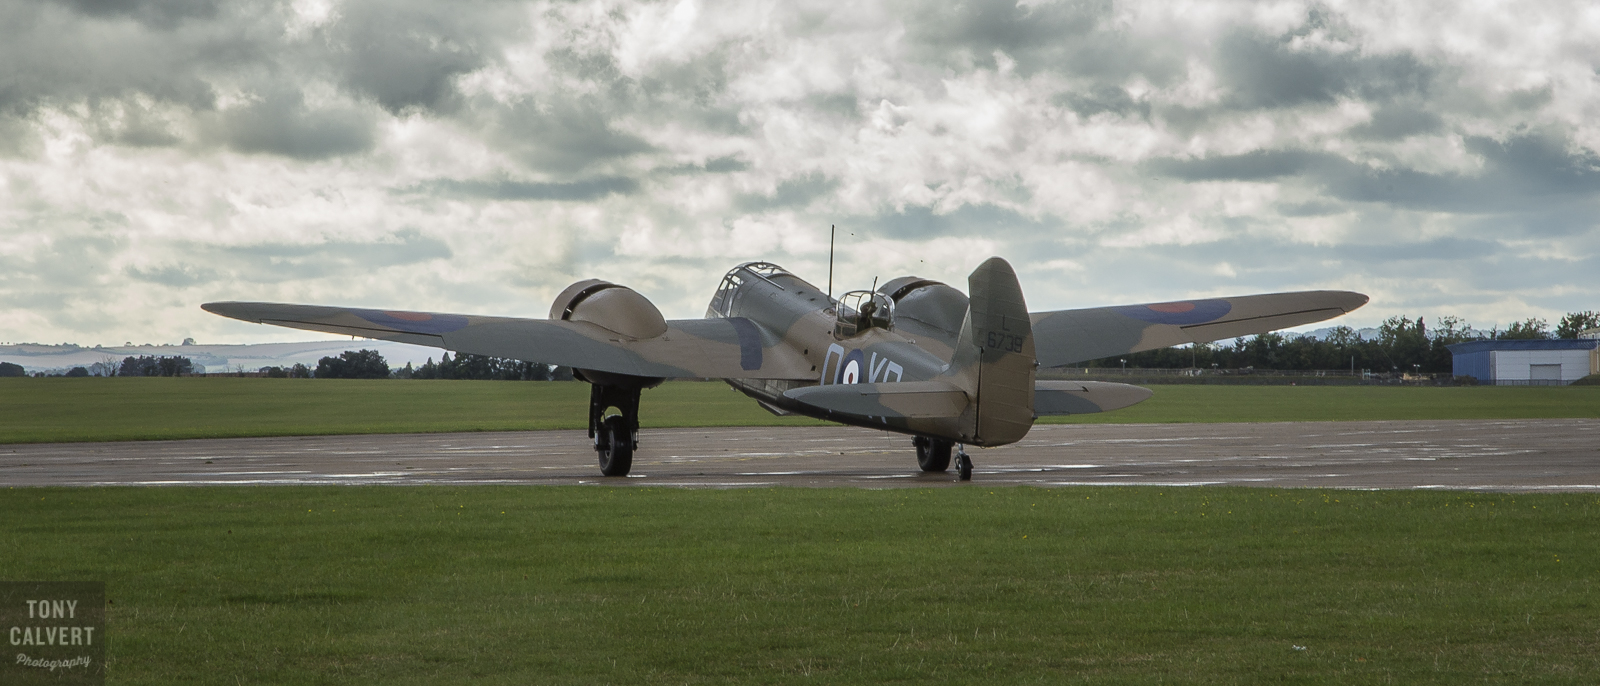 Blenheim at Duxford